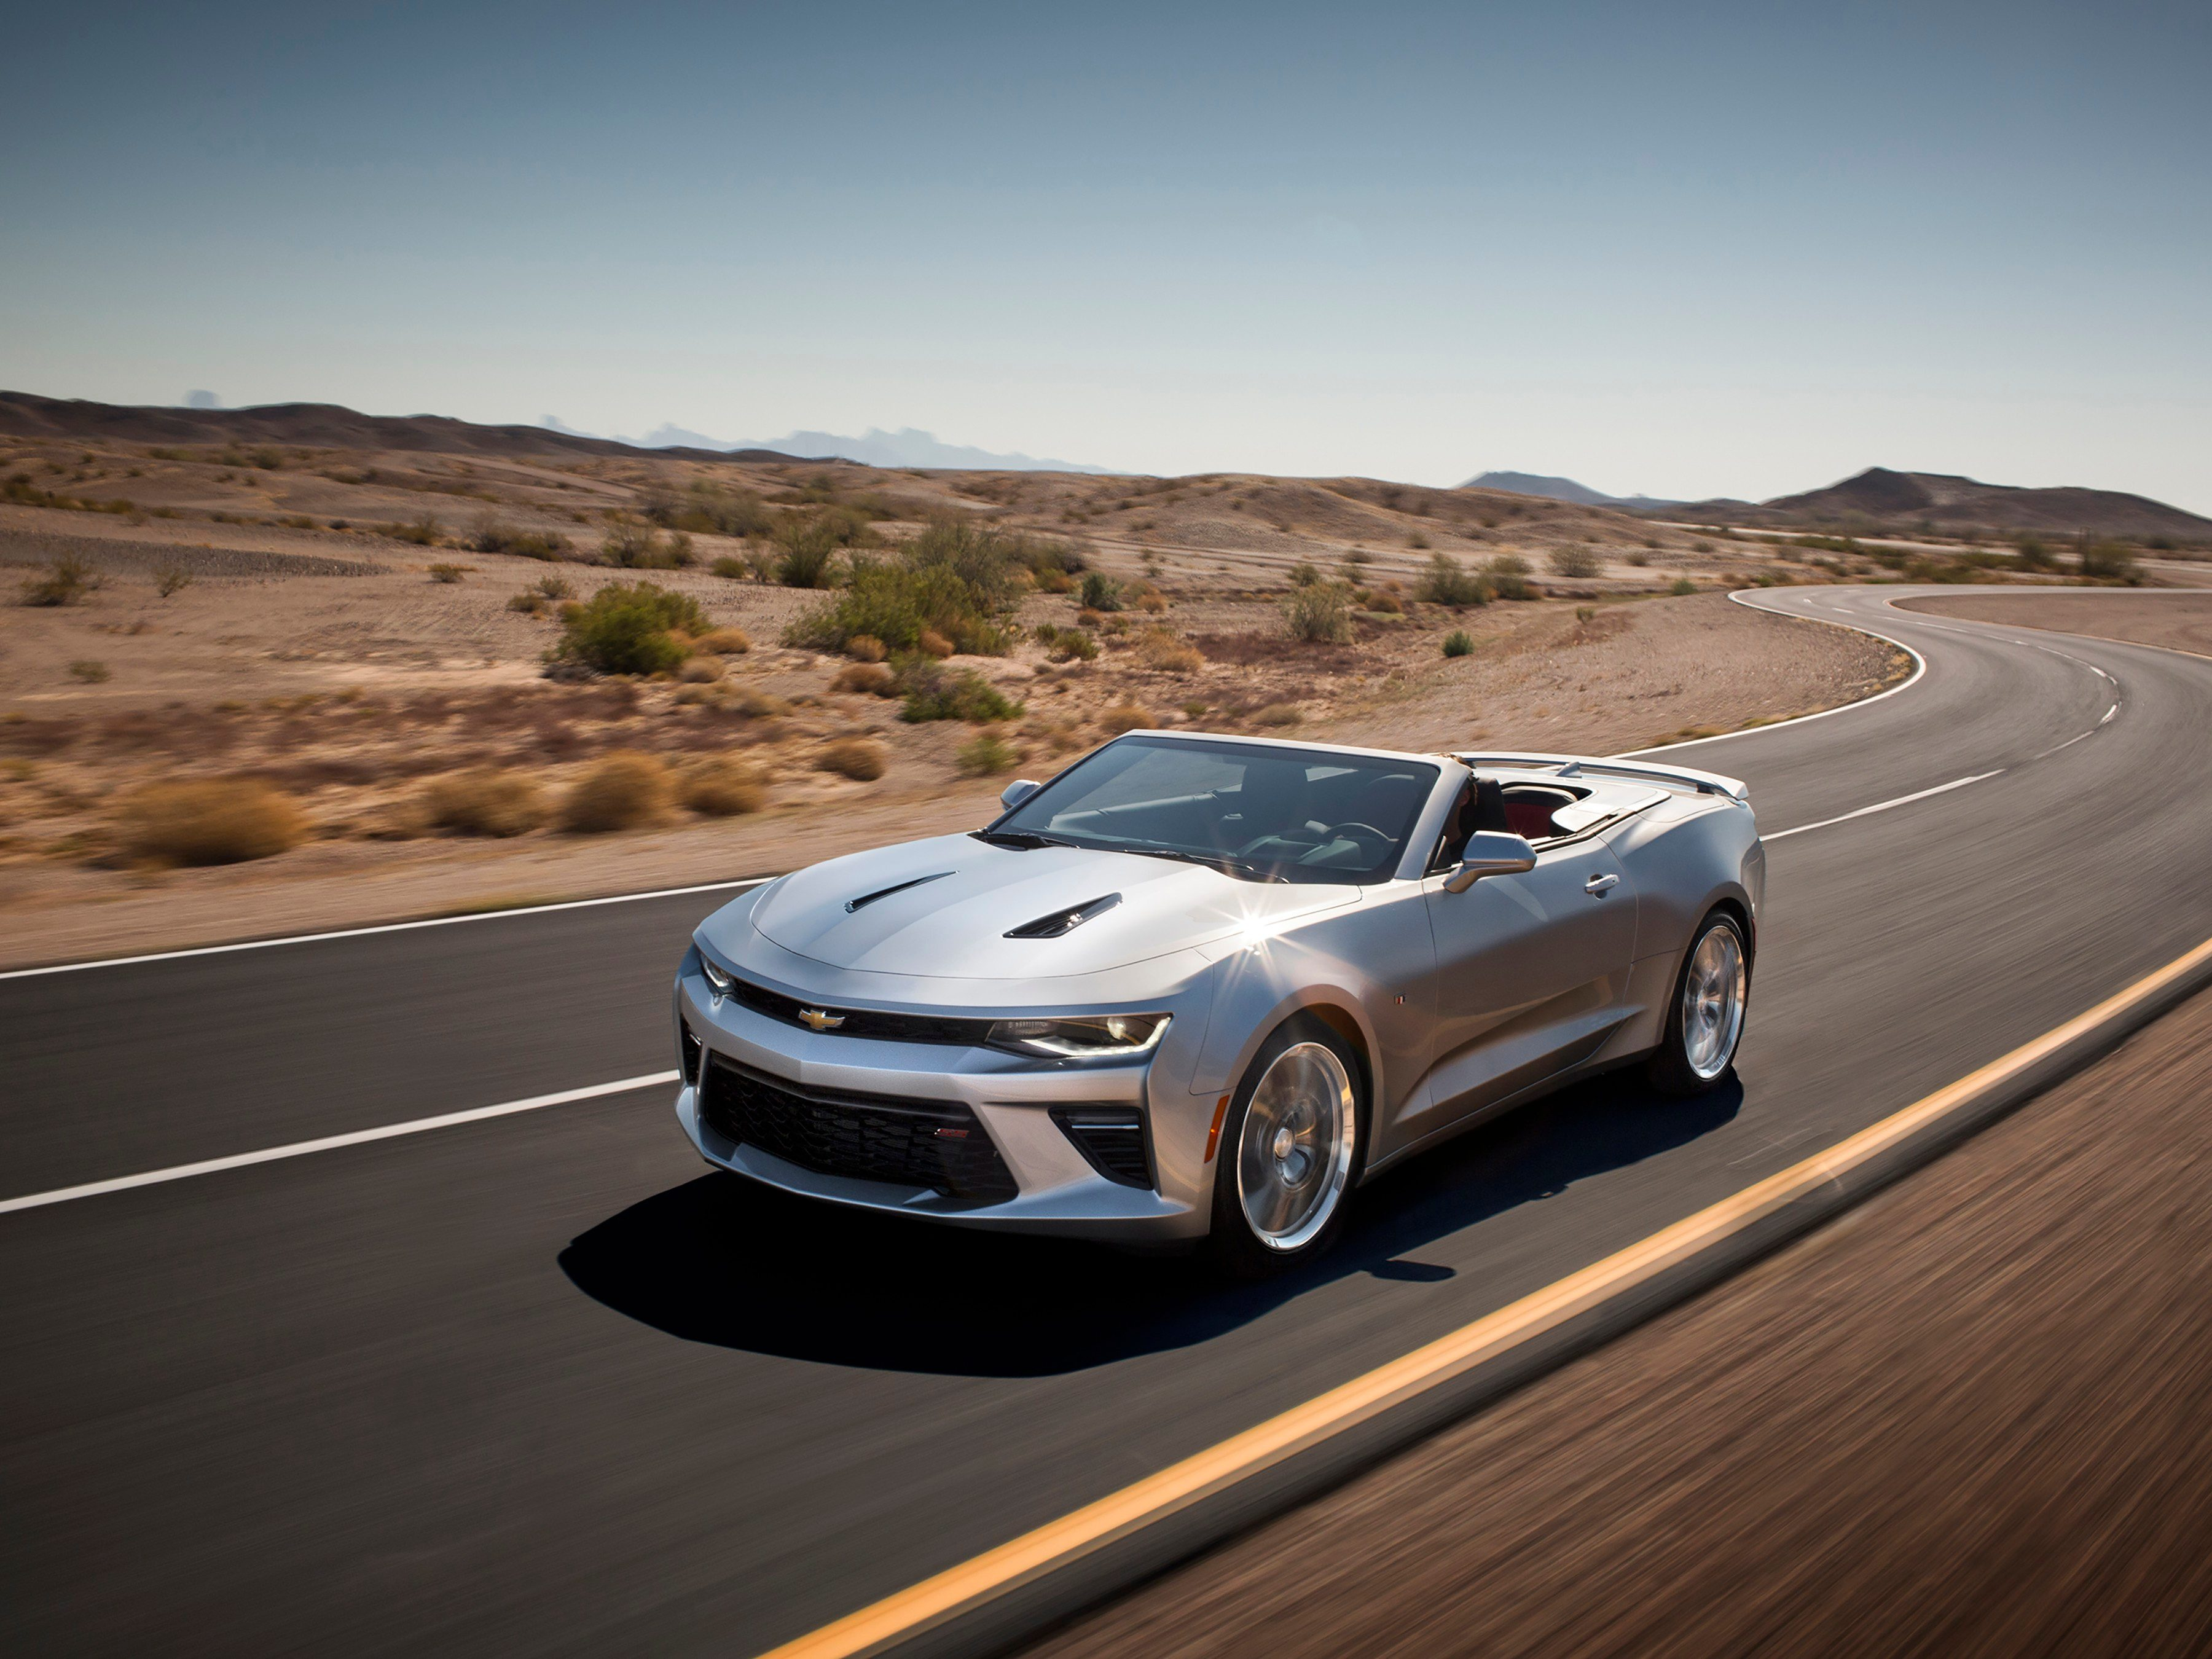 1. The 2016 Chevrolet Camaro convertible offers fully automatic operation.